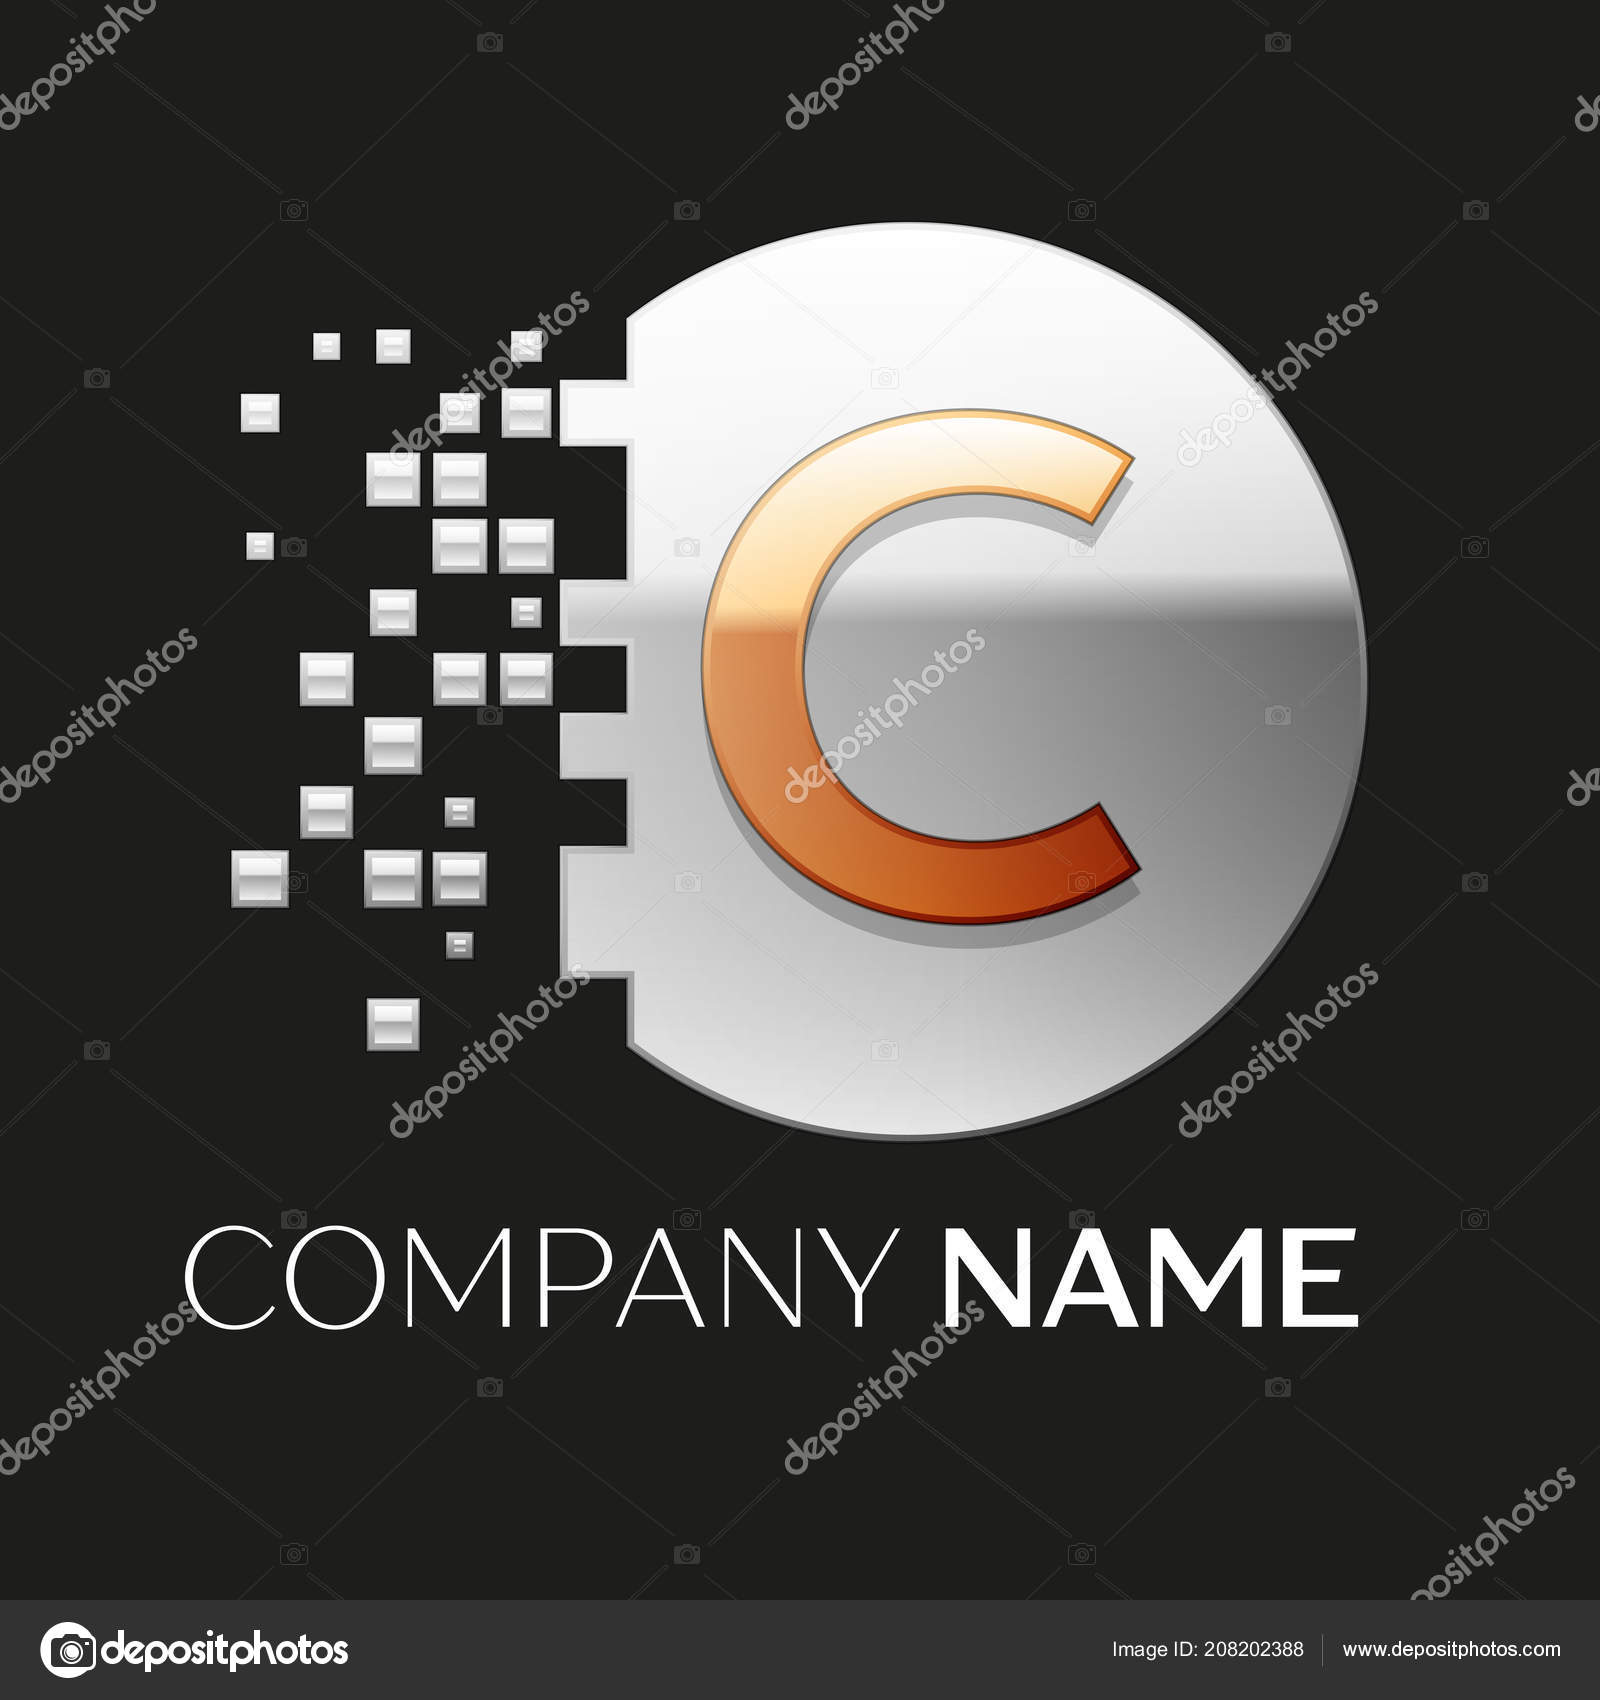 realistic golden letter c logo symbol in the silver colorful pixel